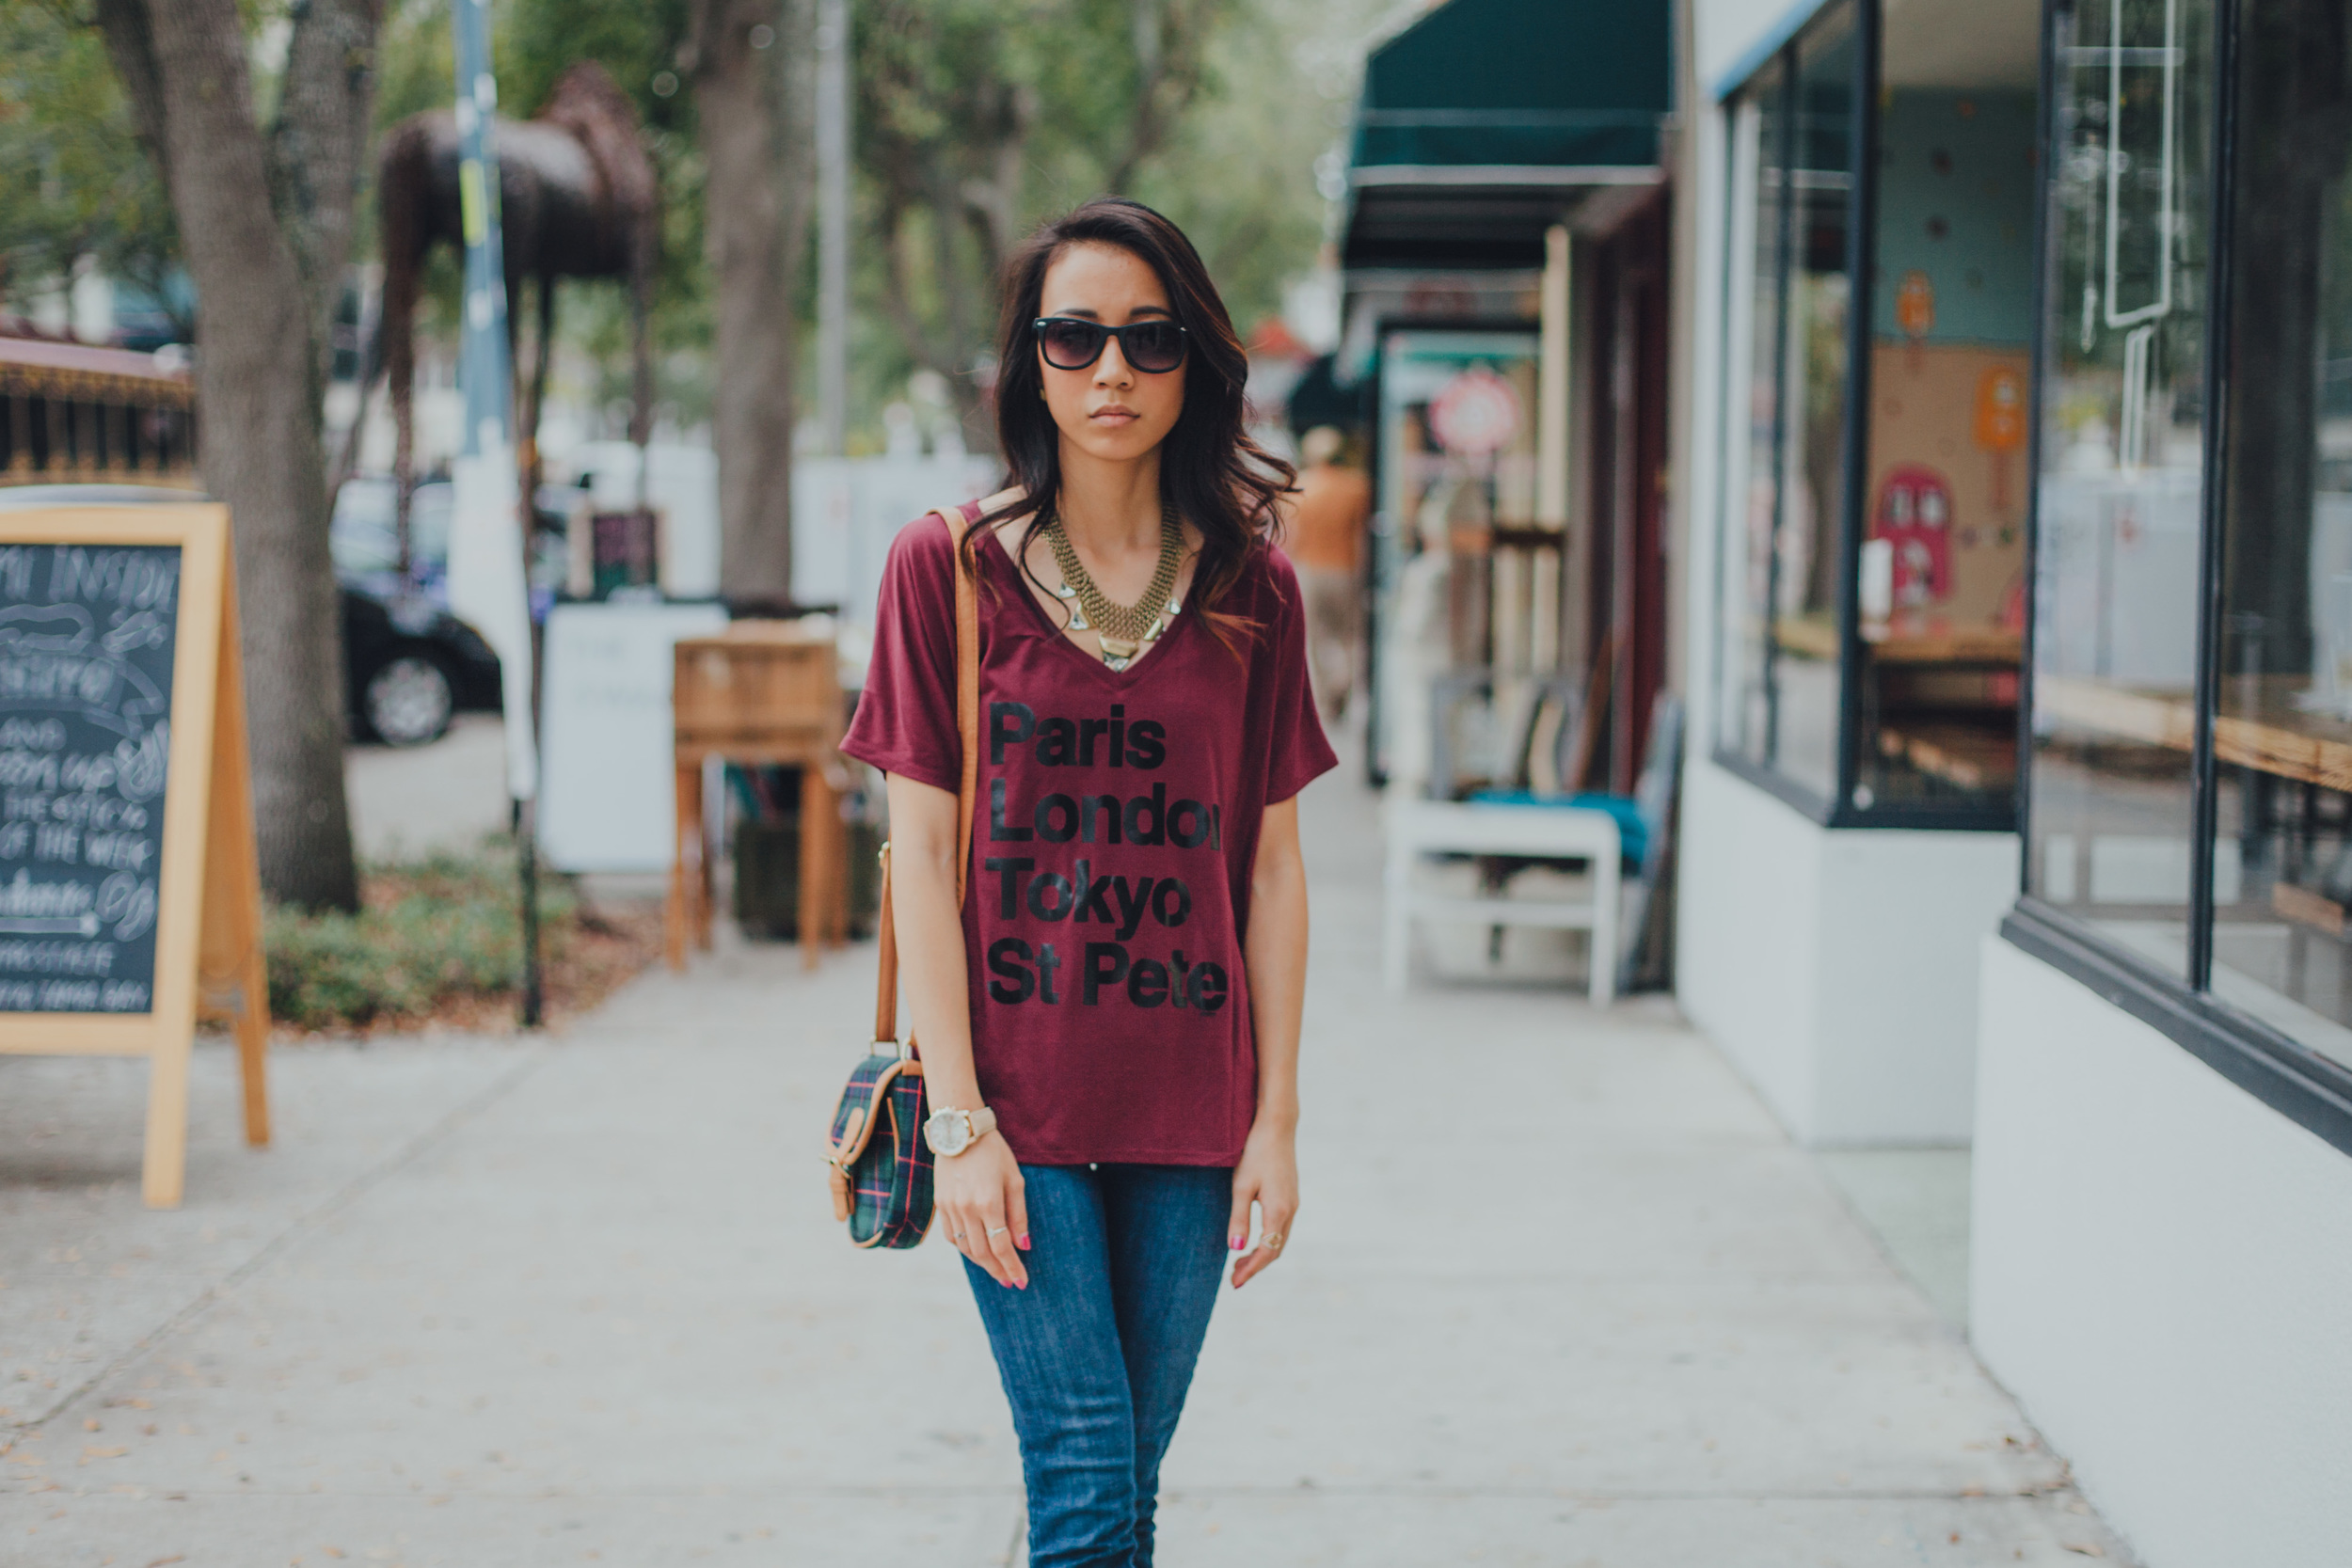 This Jenn Girl - MisRED Outfitters 1